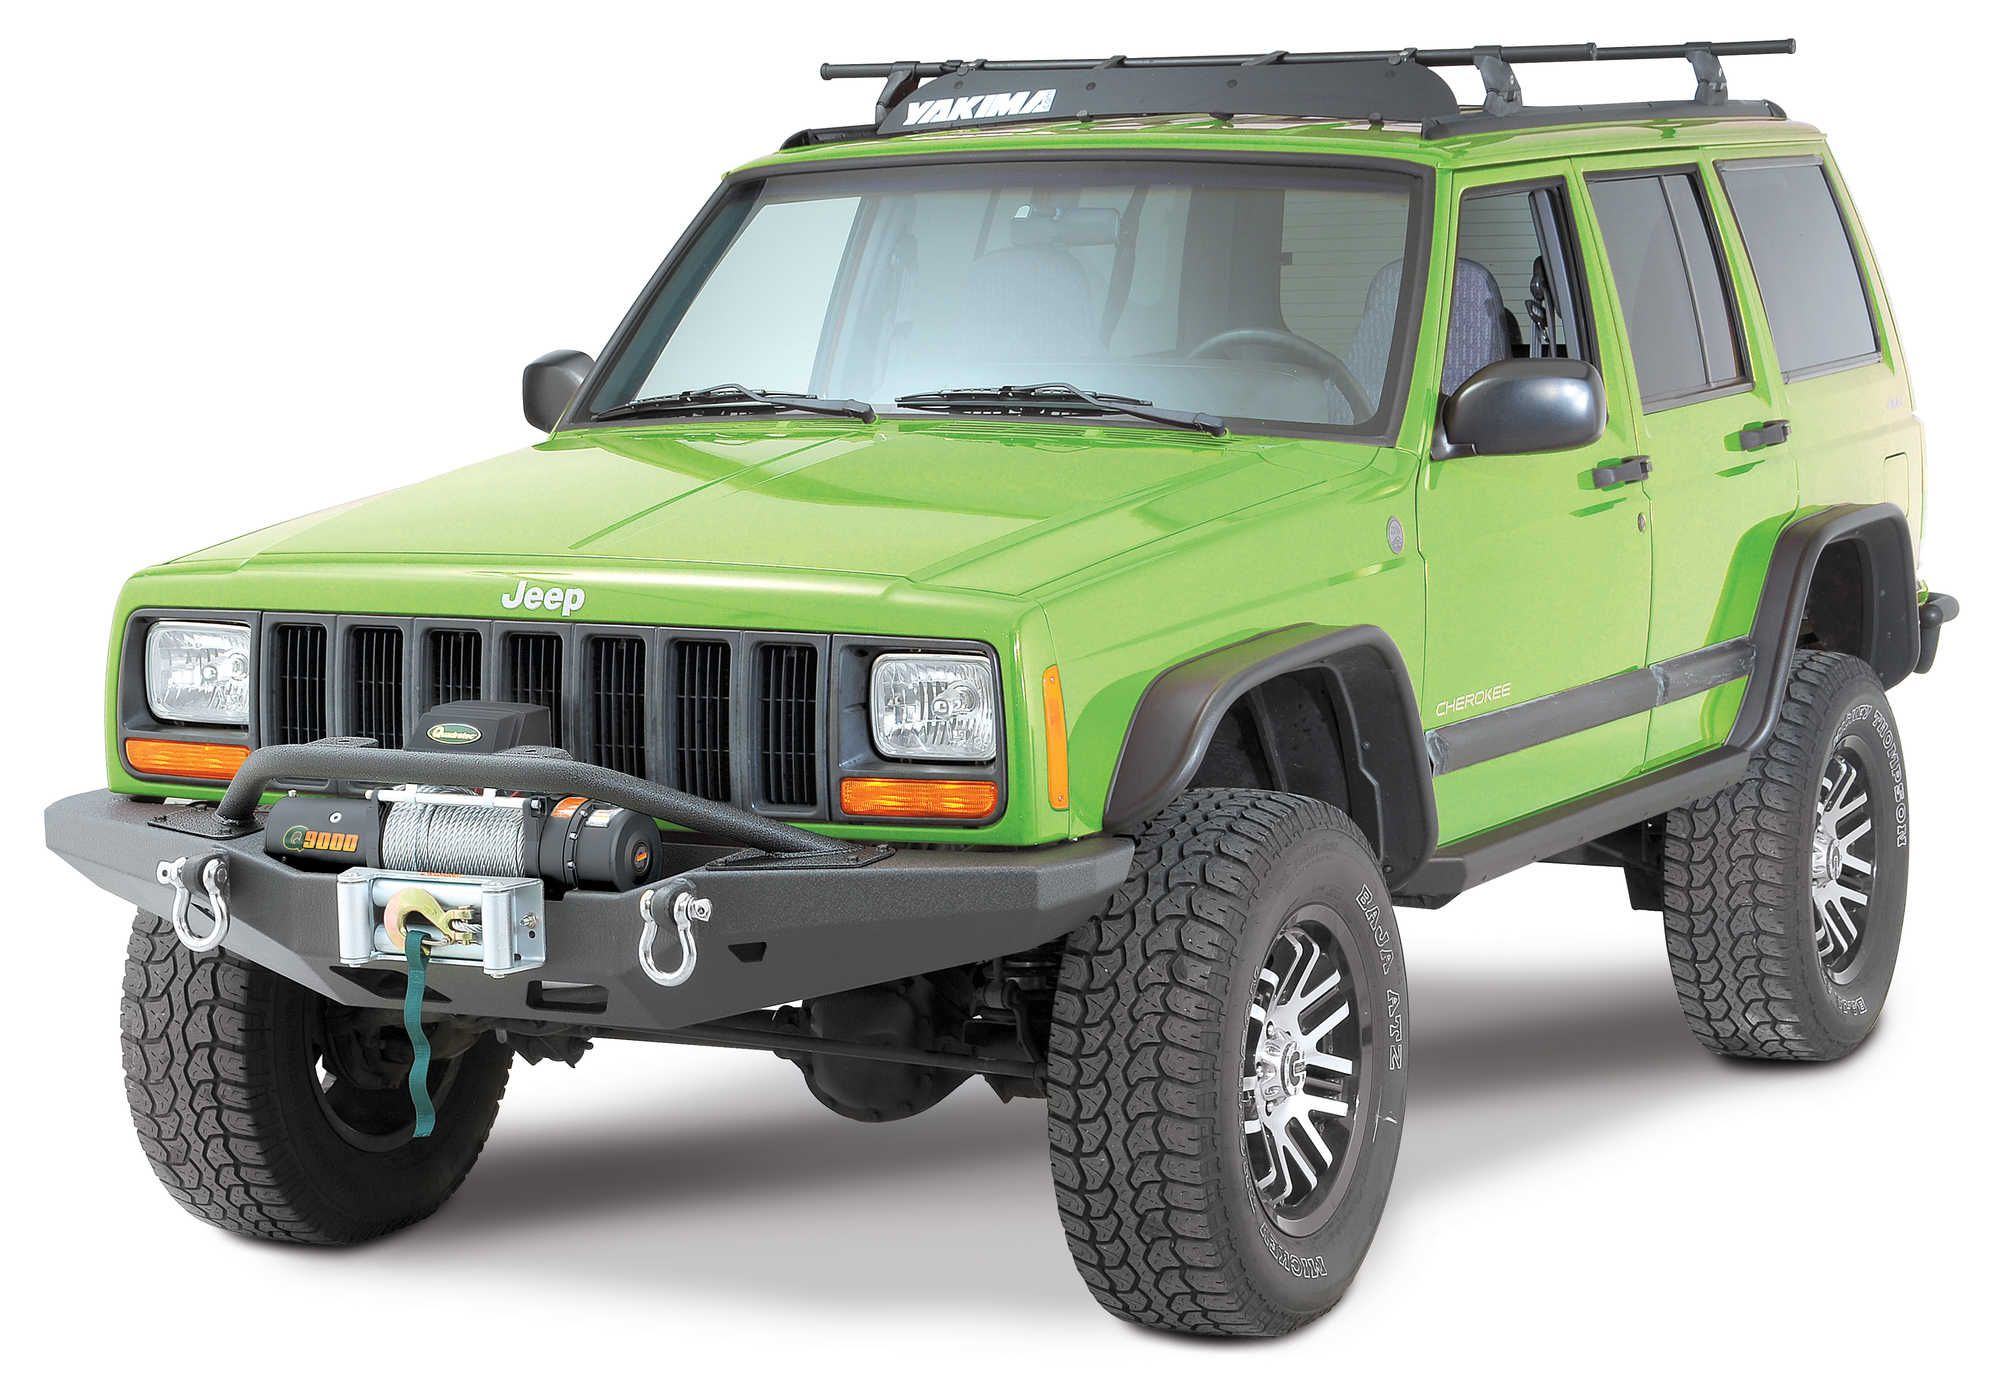 Smittybilt Xrc Multi Optional Design M O D Front Bumper With